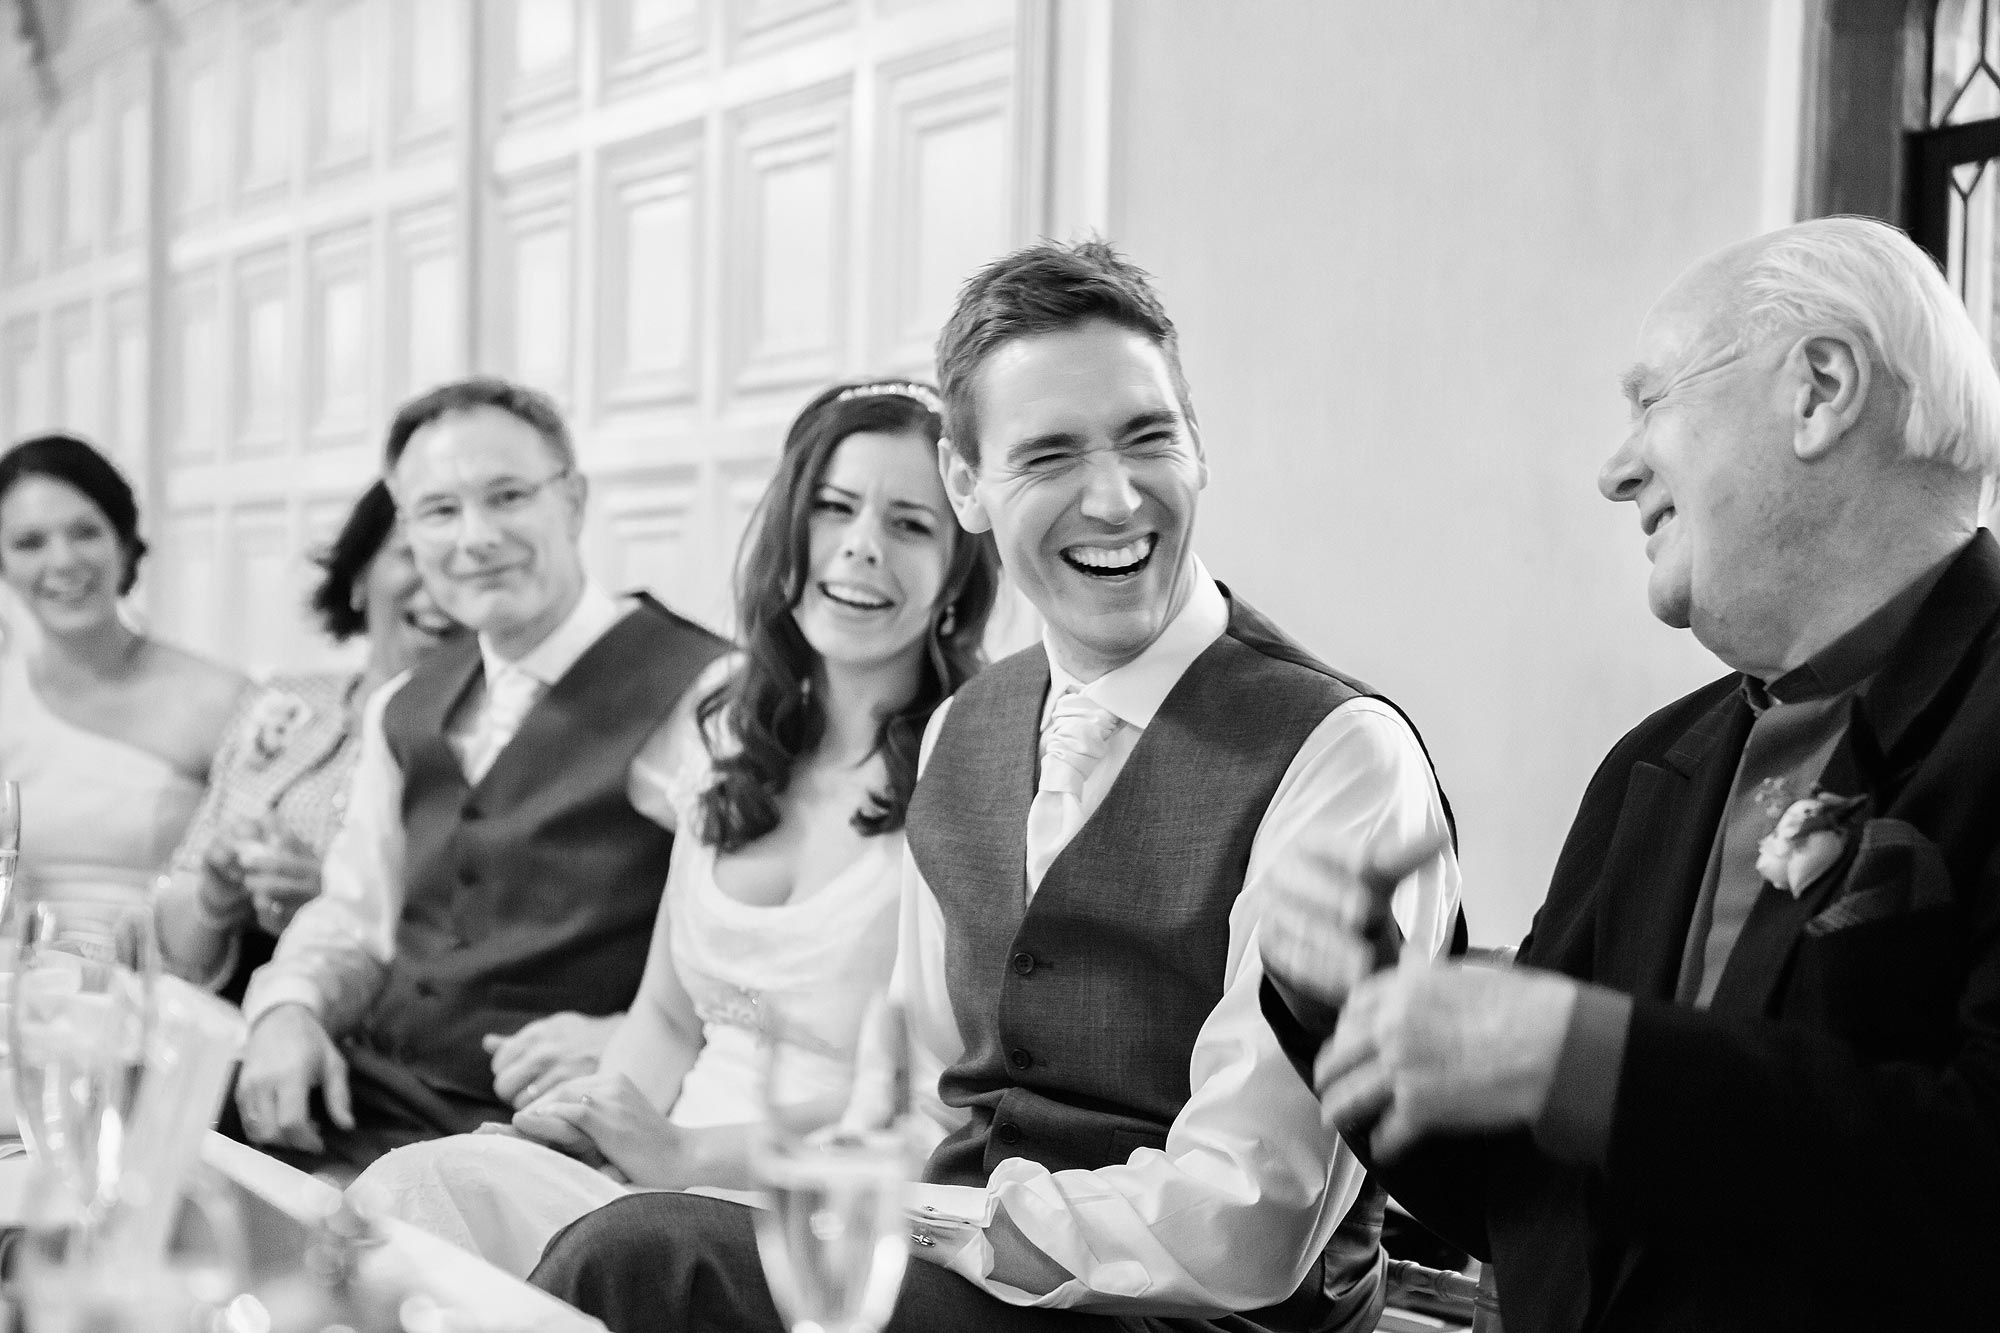 The groom laughs at his best man's speech